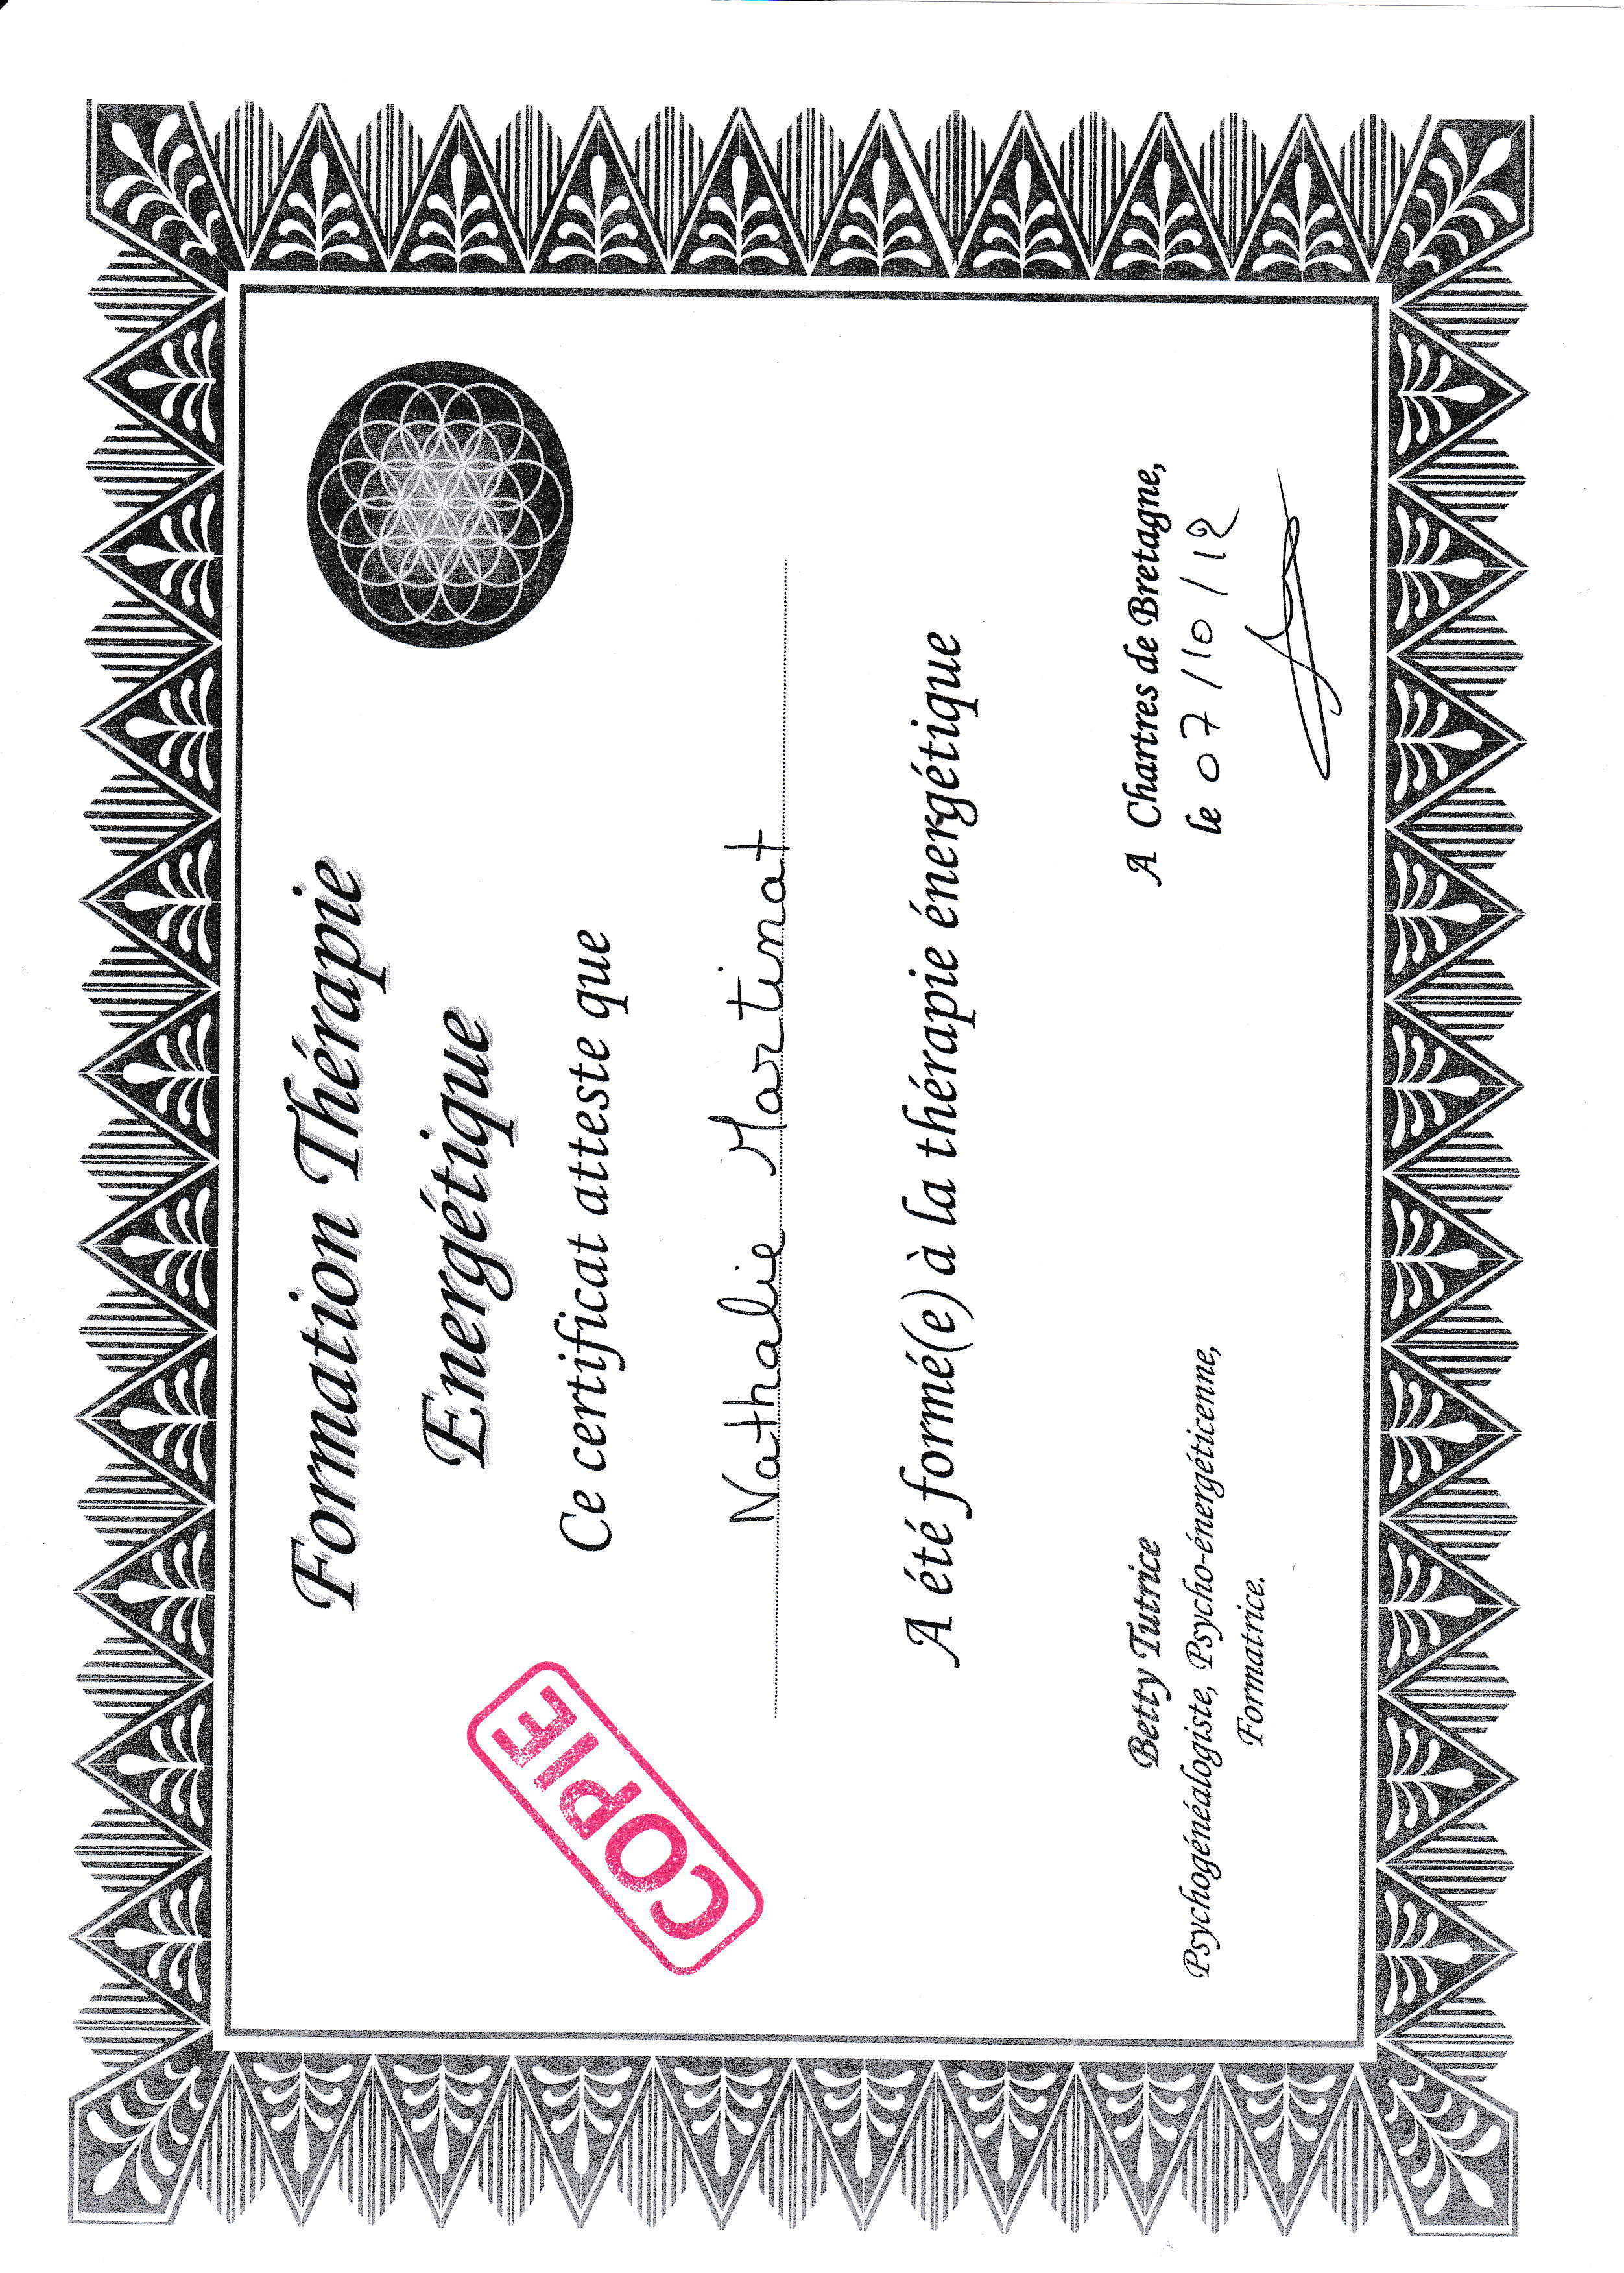 57a32810e752f_certificat therapie energetique 2012.pdf